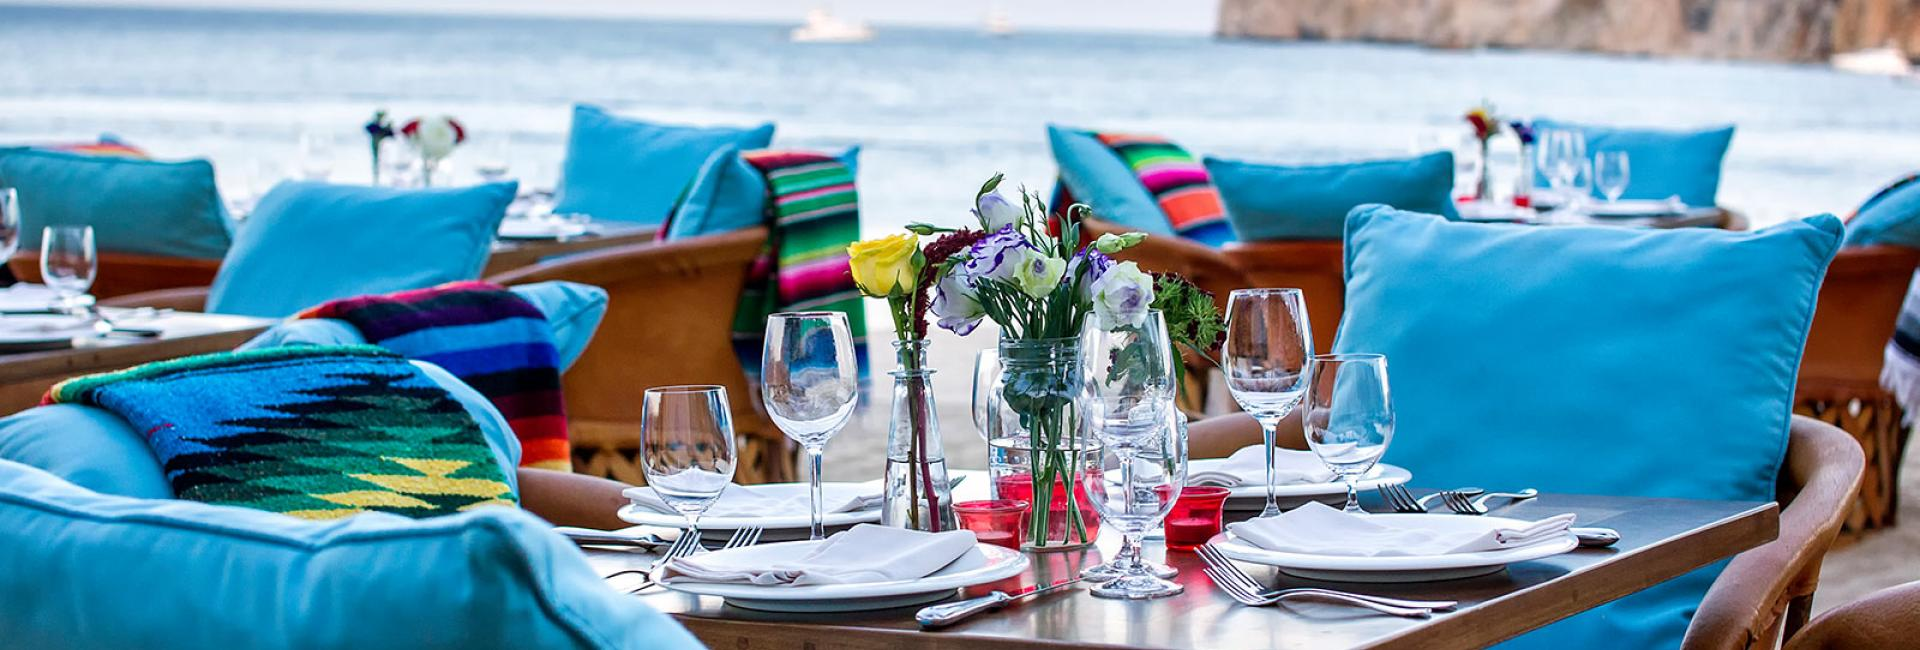 Chairs and tables set for dinner by the ocean